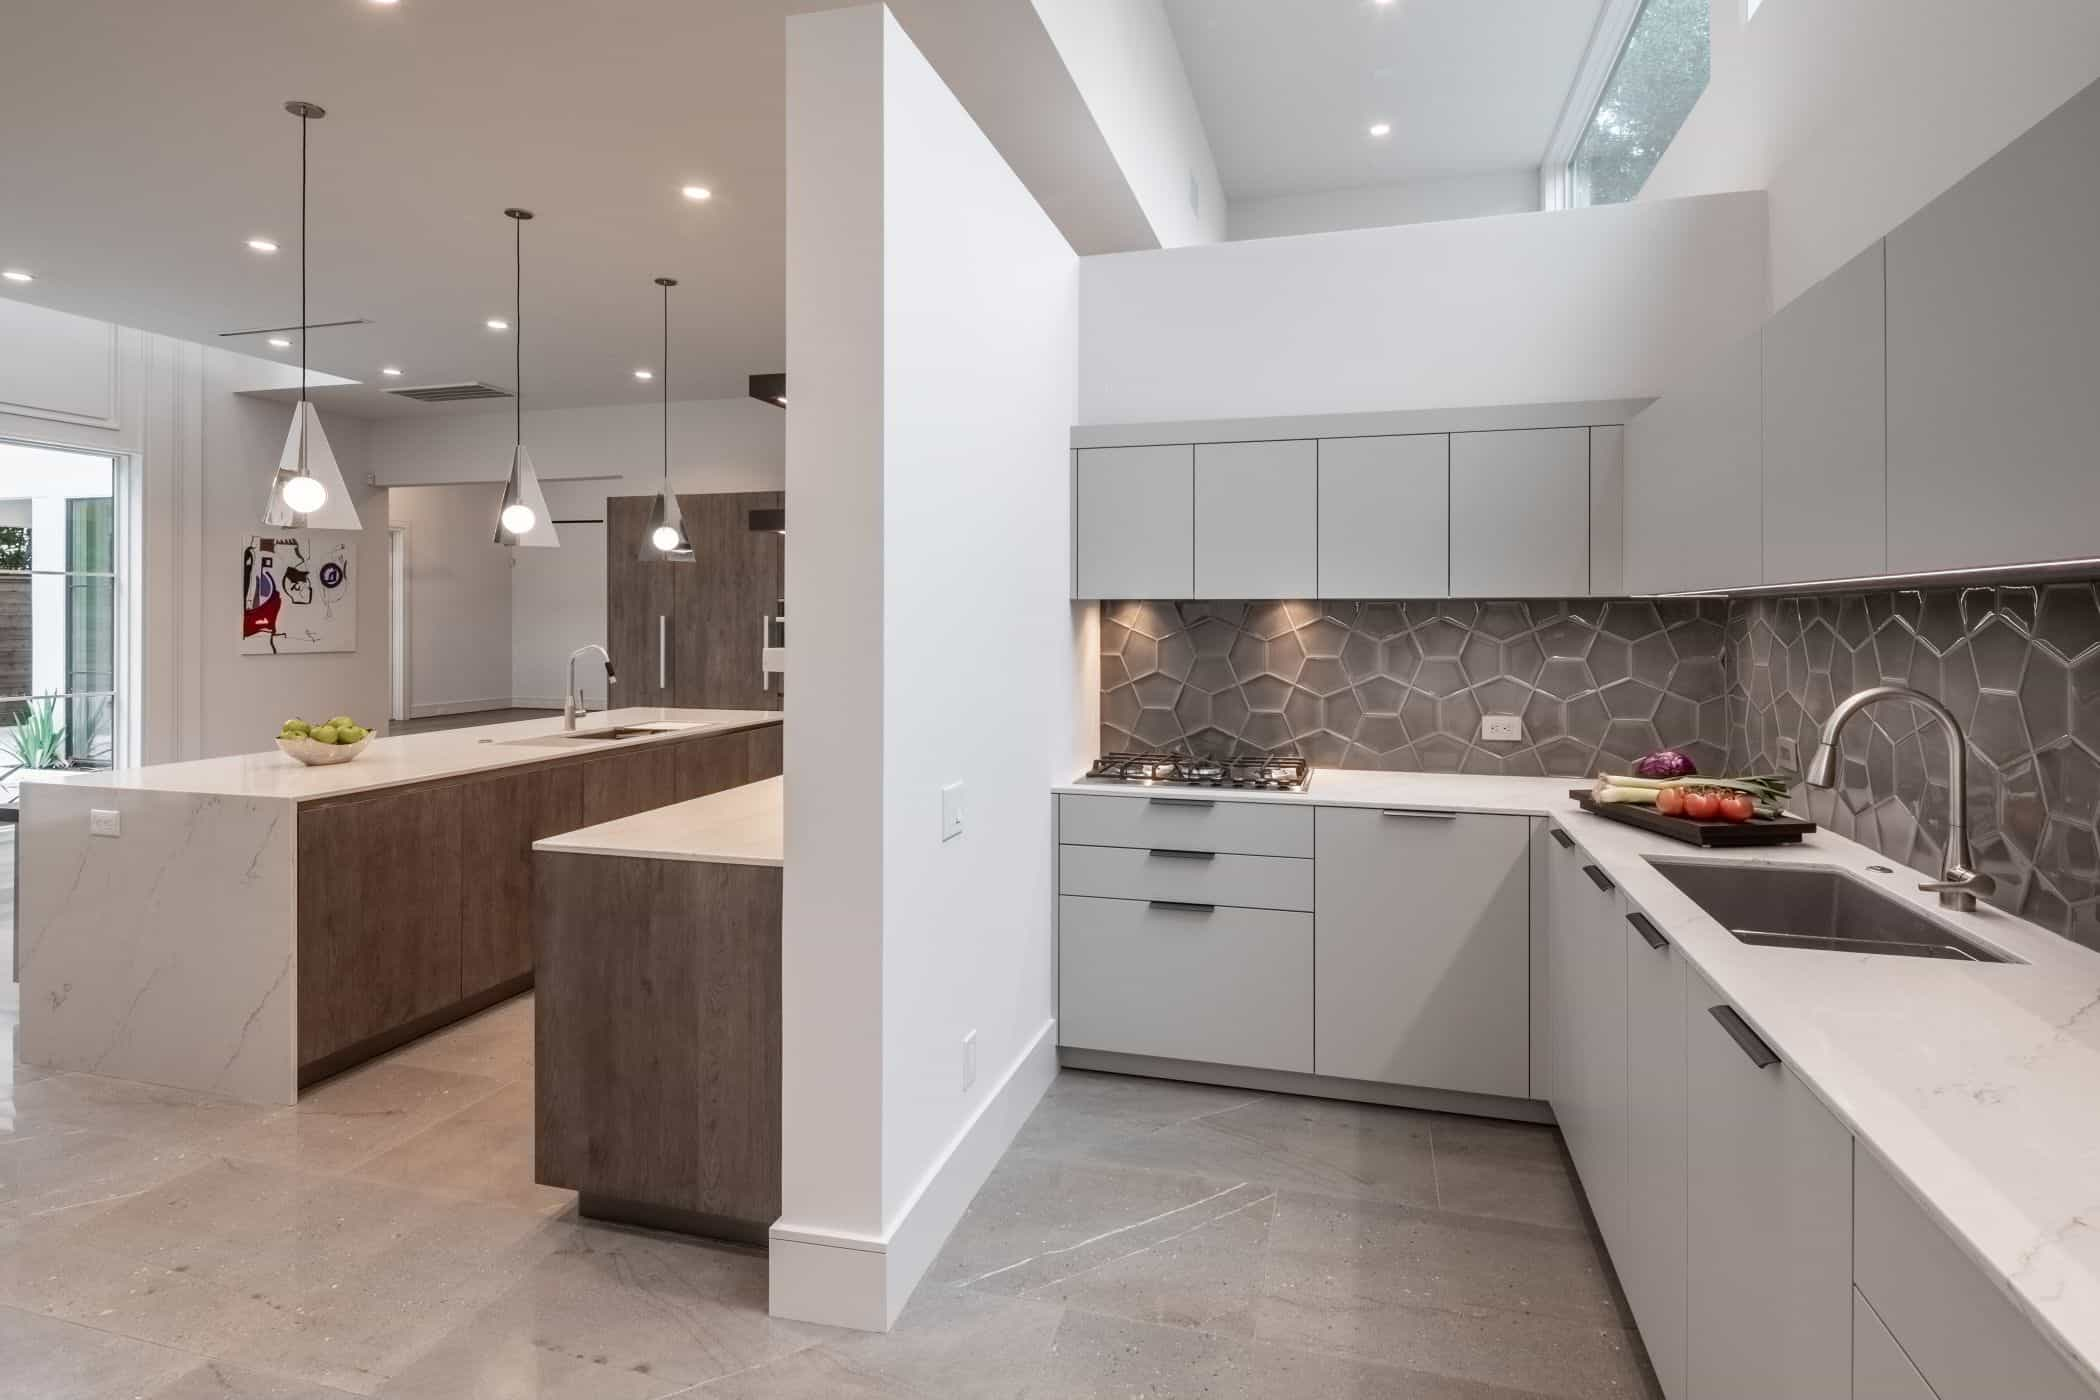 catering kitchen designed by eggersmann for a washington coalition memorial park area home in houston